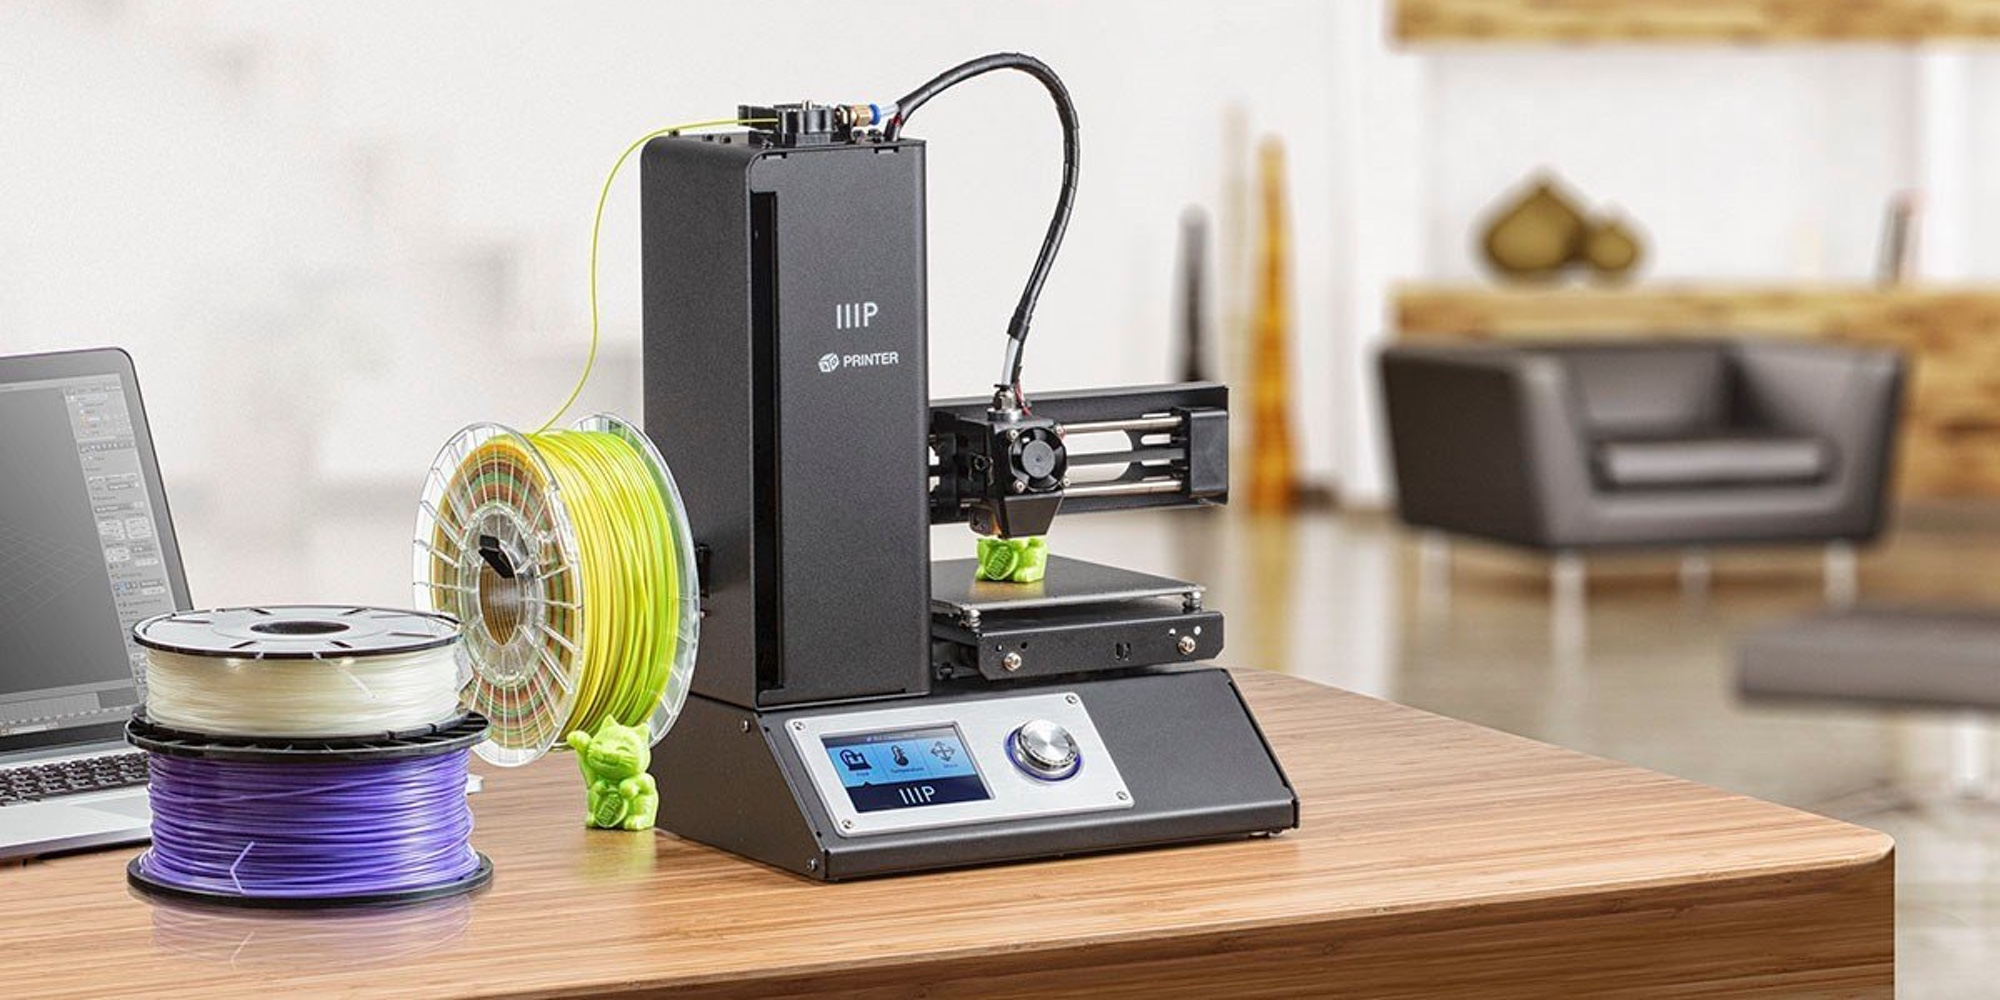 Creality® 3D Printers. Creality3D Black Friday Sale, Up to Extra $50 Coupon. CR10S $,Ender3 $Get original Creality 3D printers at a lowest price. Free shipping and 1-year 355movie.ml best printer under $ Ender3,largest print size CR10 S5,the new arrival Ender3 pro. Creality3D sweet discount for you.